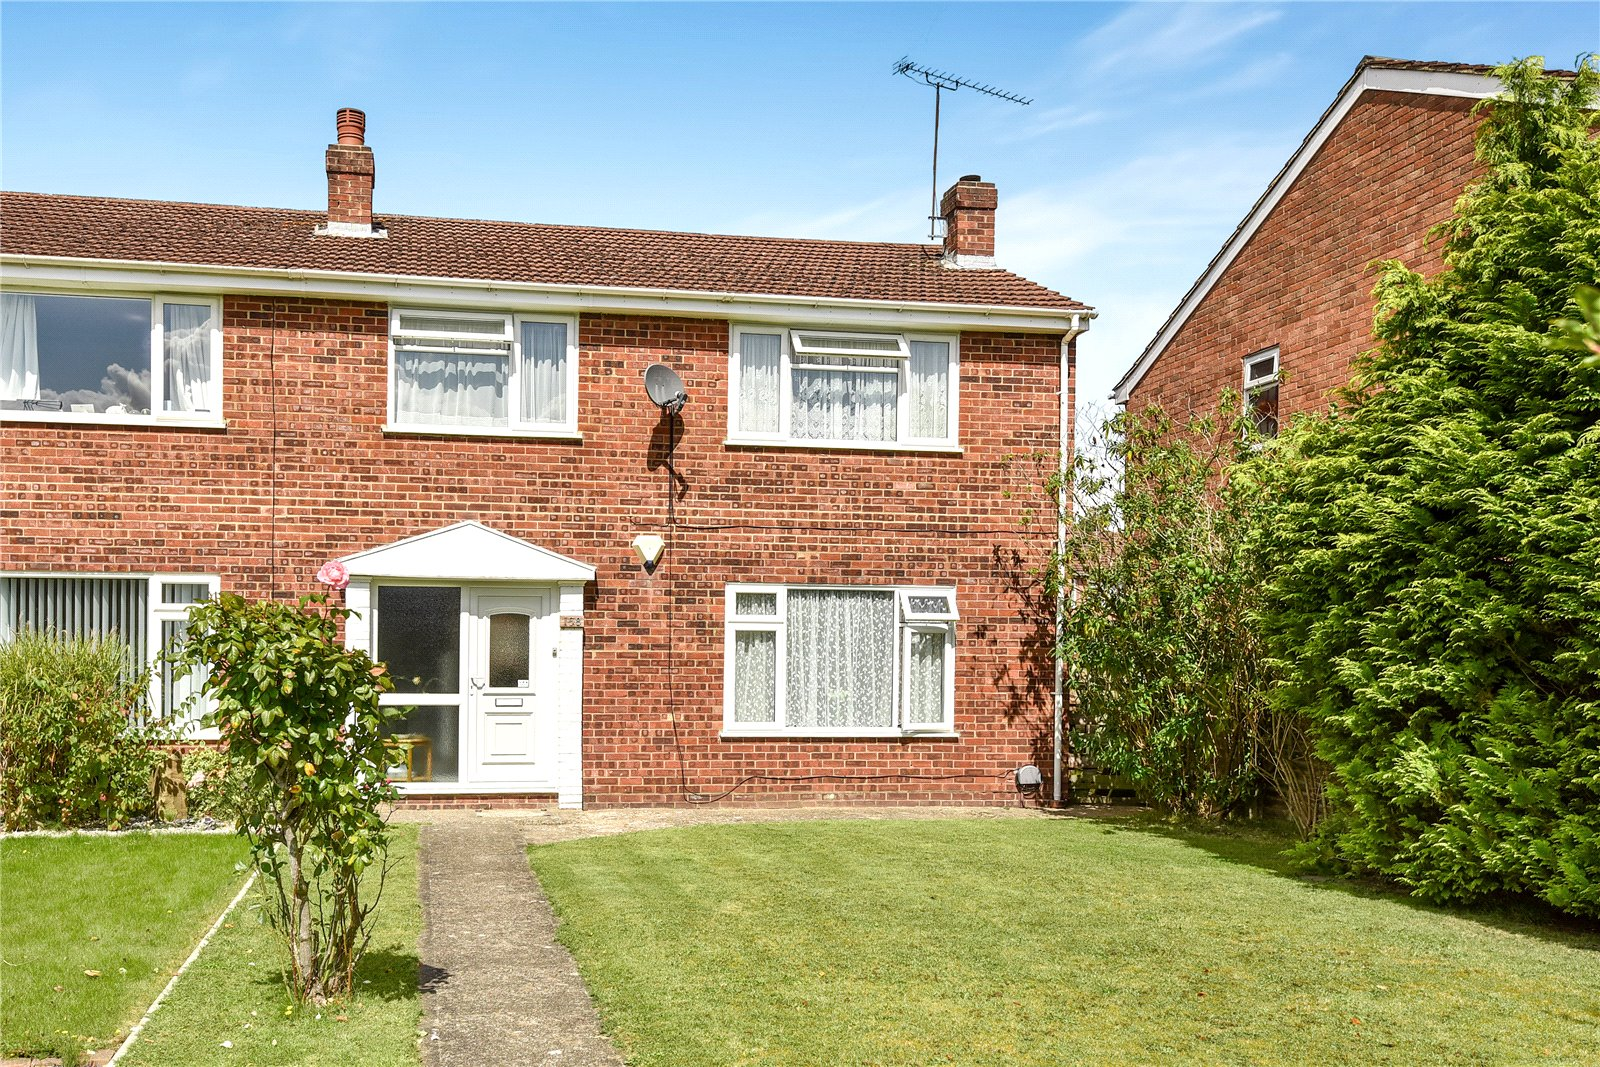 3 Bedrooms End Of Terrace House for sale in Beaulieu Gardens, Blackwater, Camberley, GU17